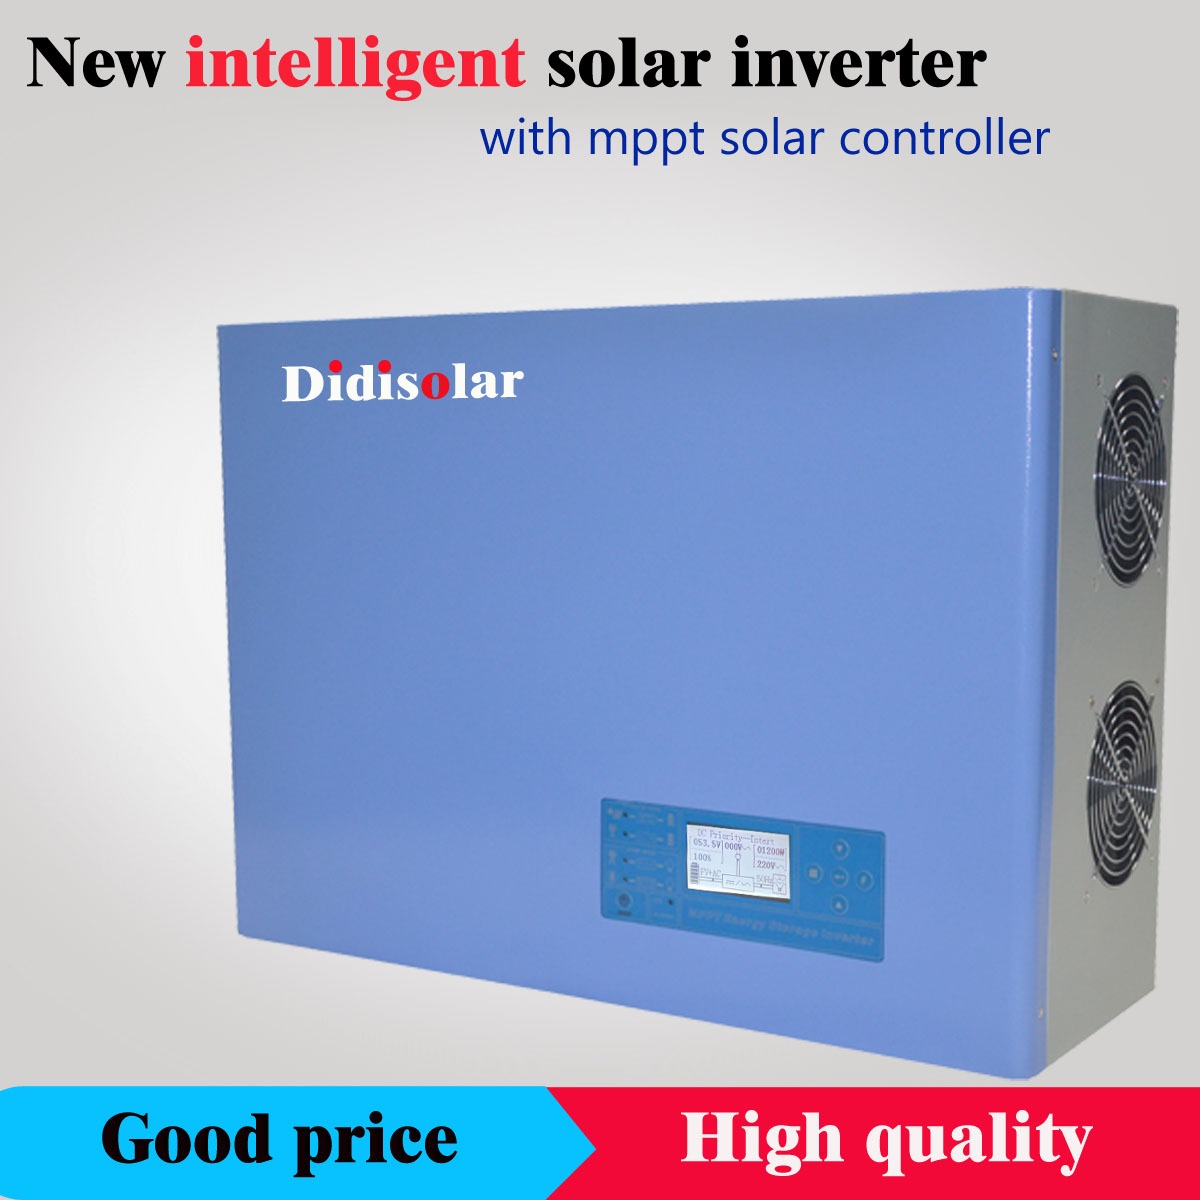 How to set the time, language, contrast, brightness and sound of Didisolar solar inverter